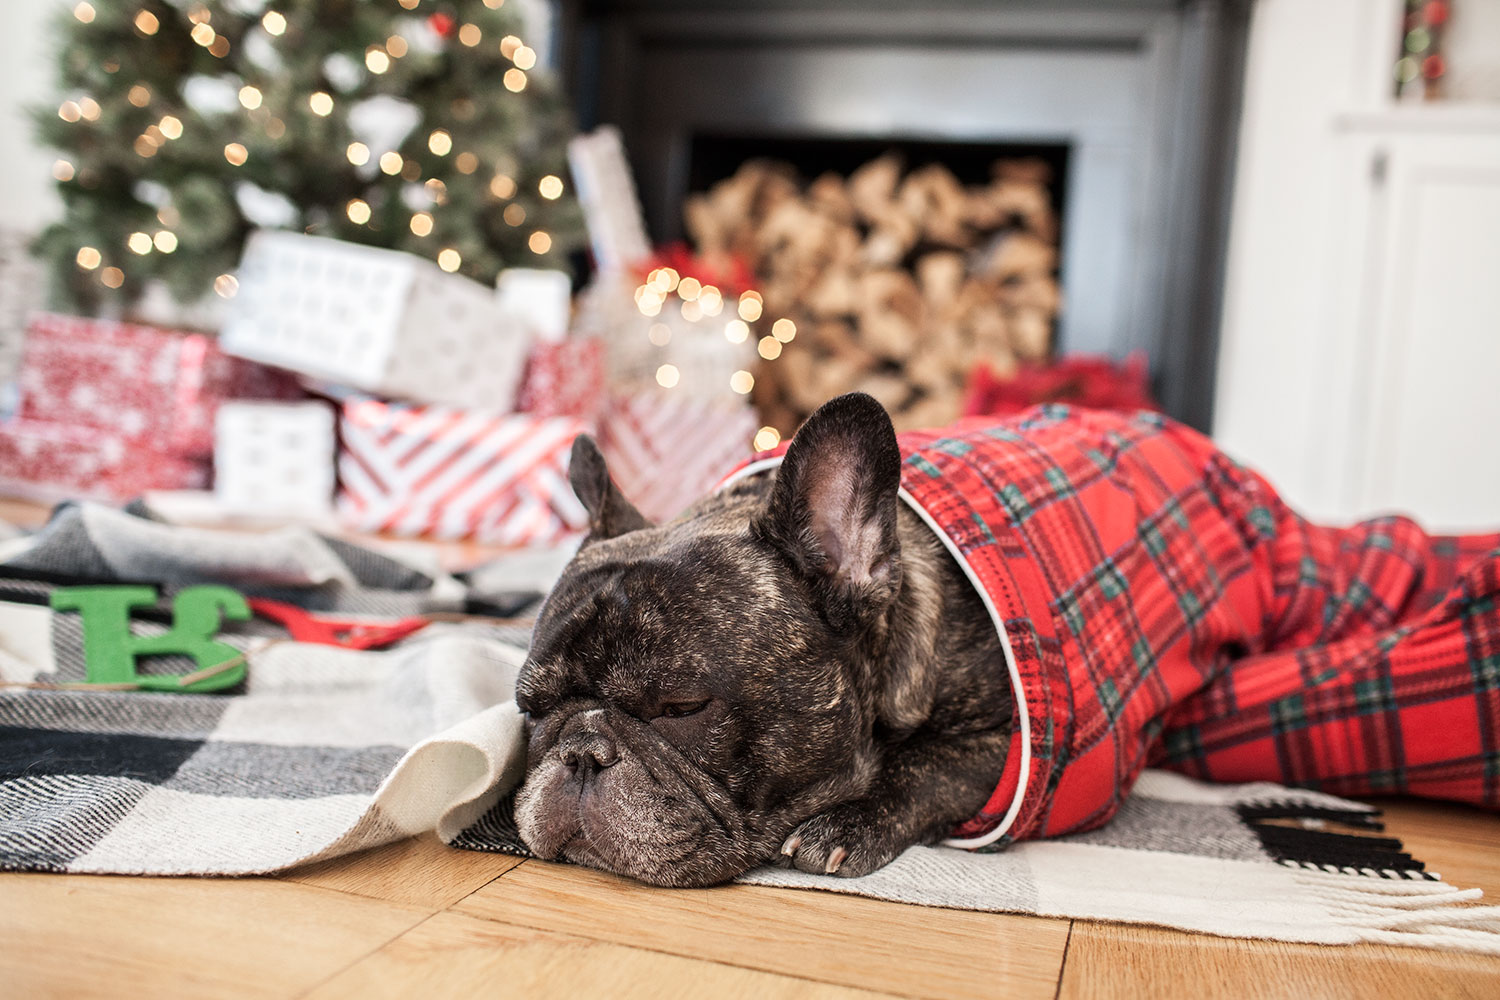 Target plaid holiday dog pajamas, holidays